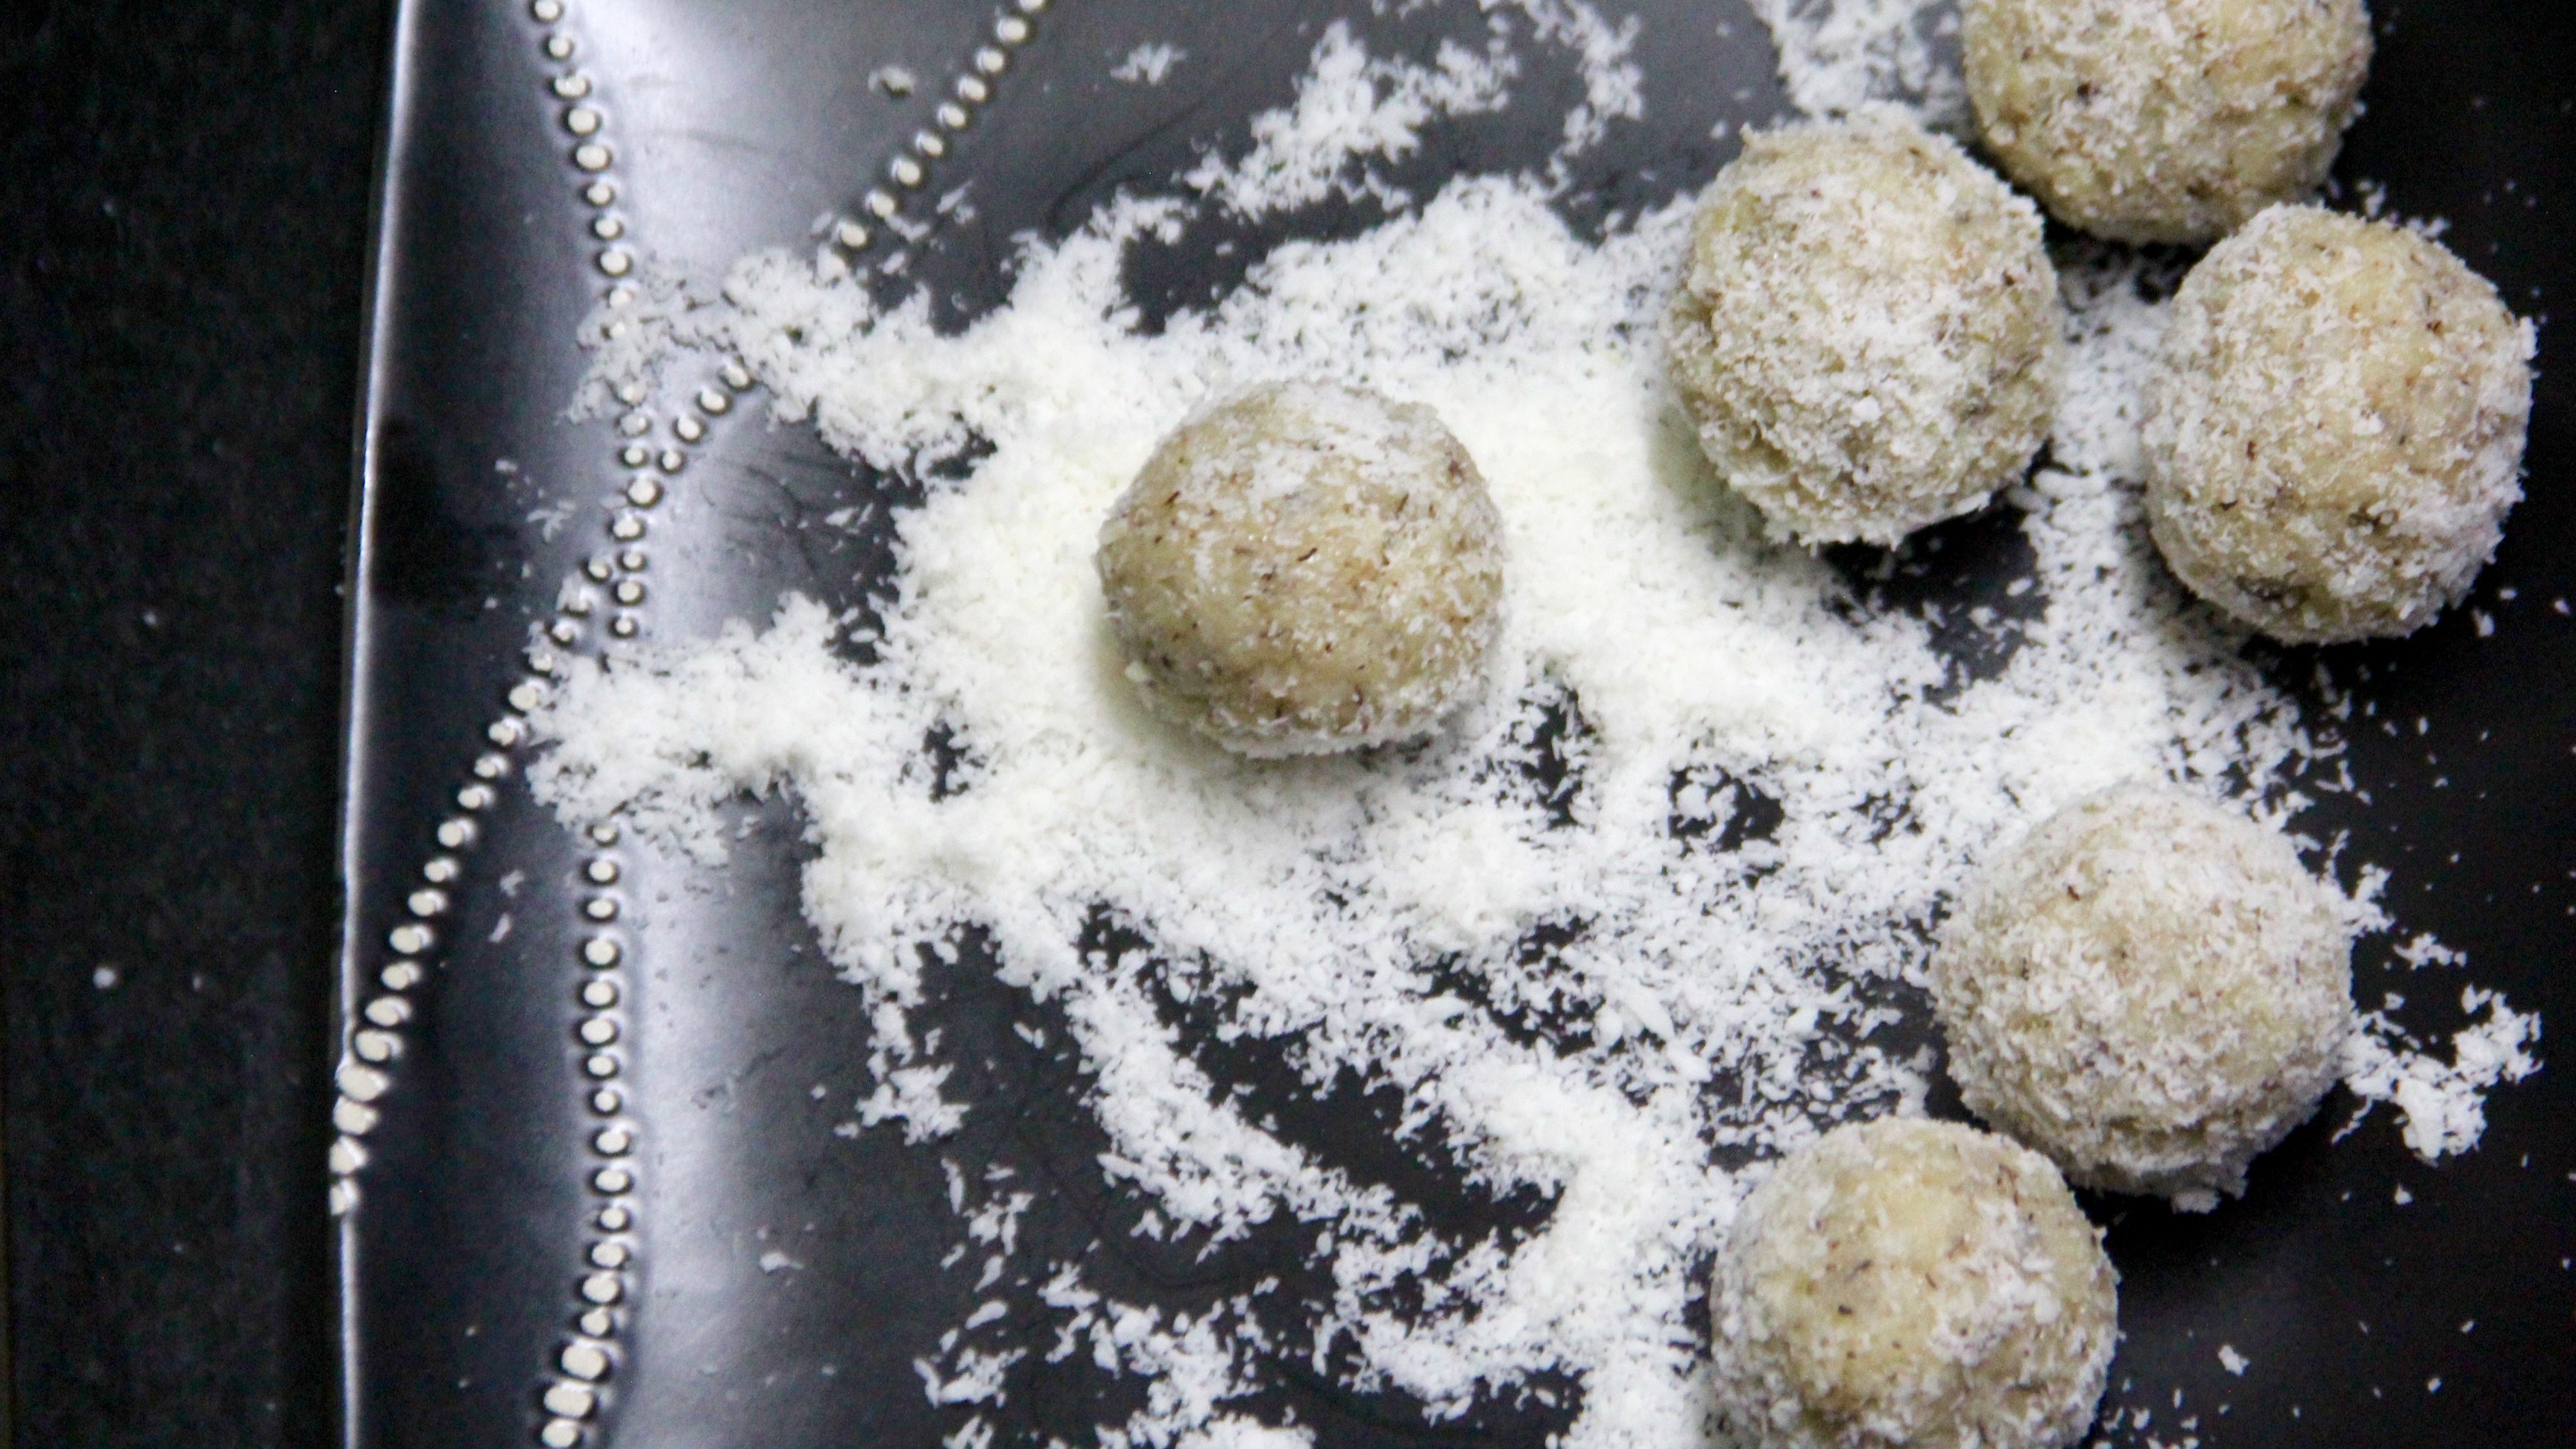 Rolling prepared ladoo over desiccated coconut